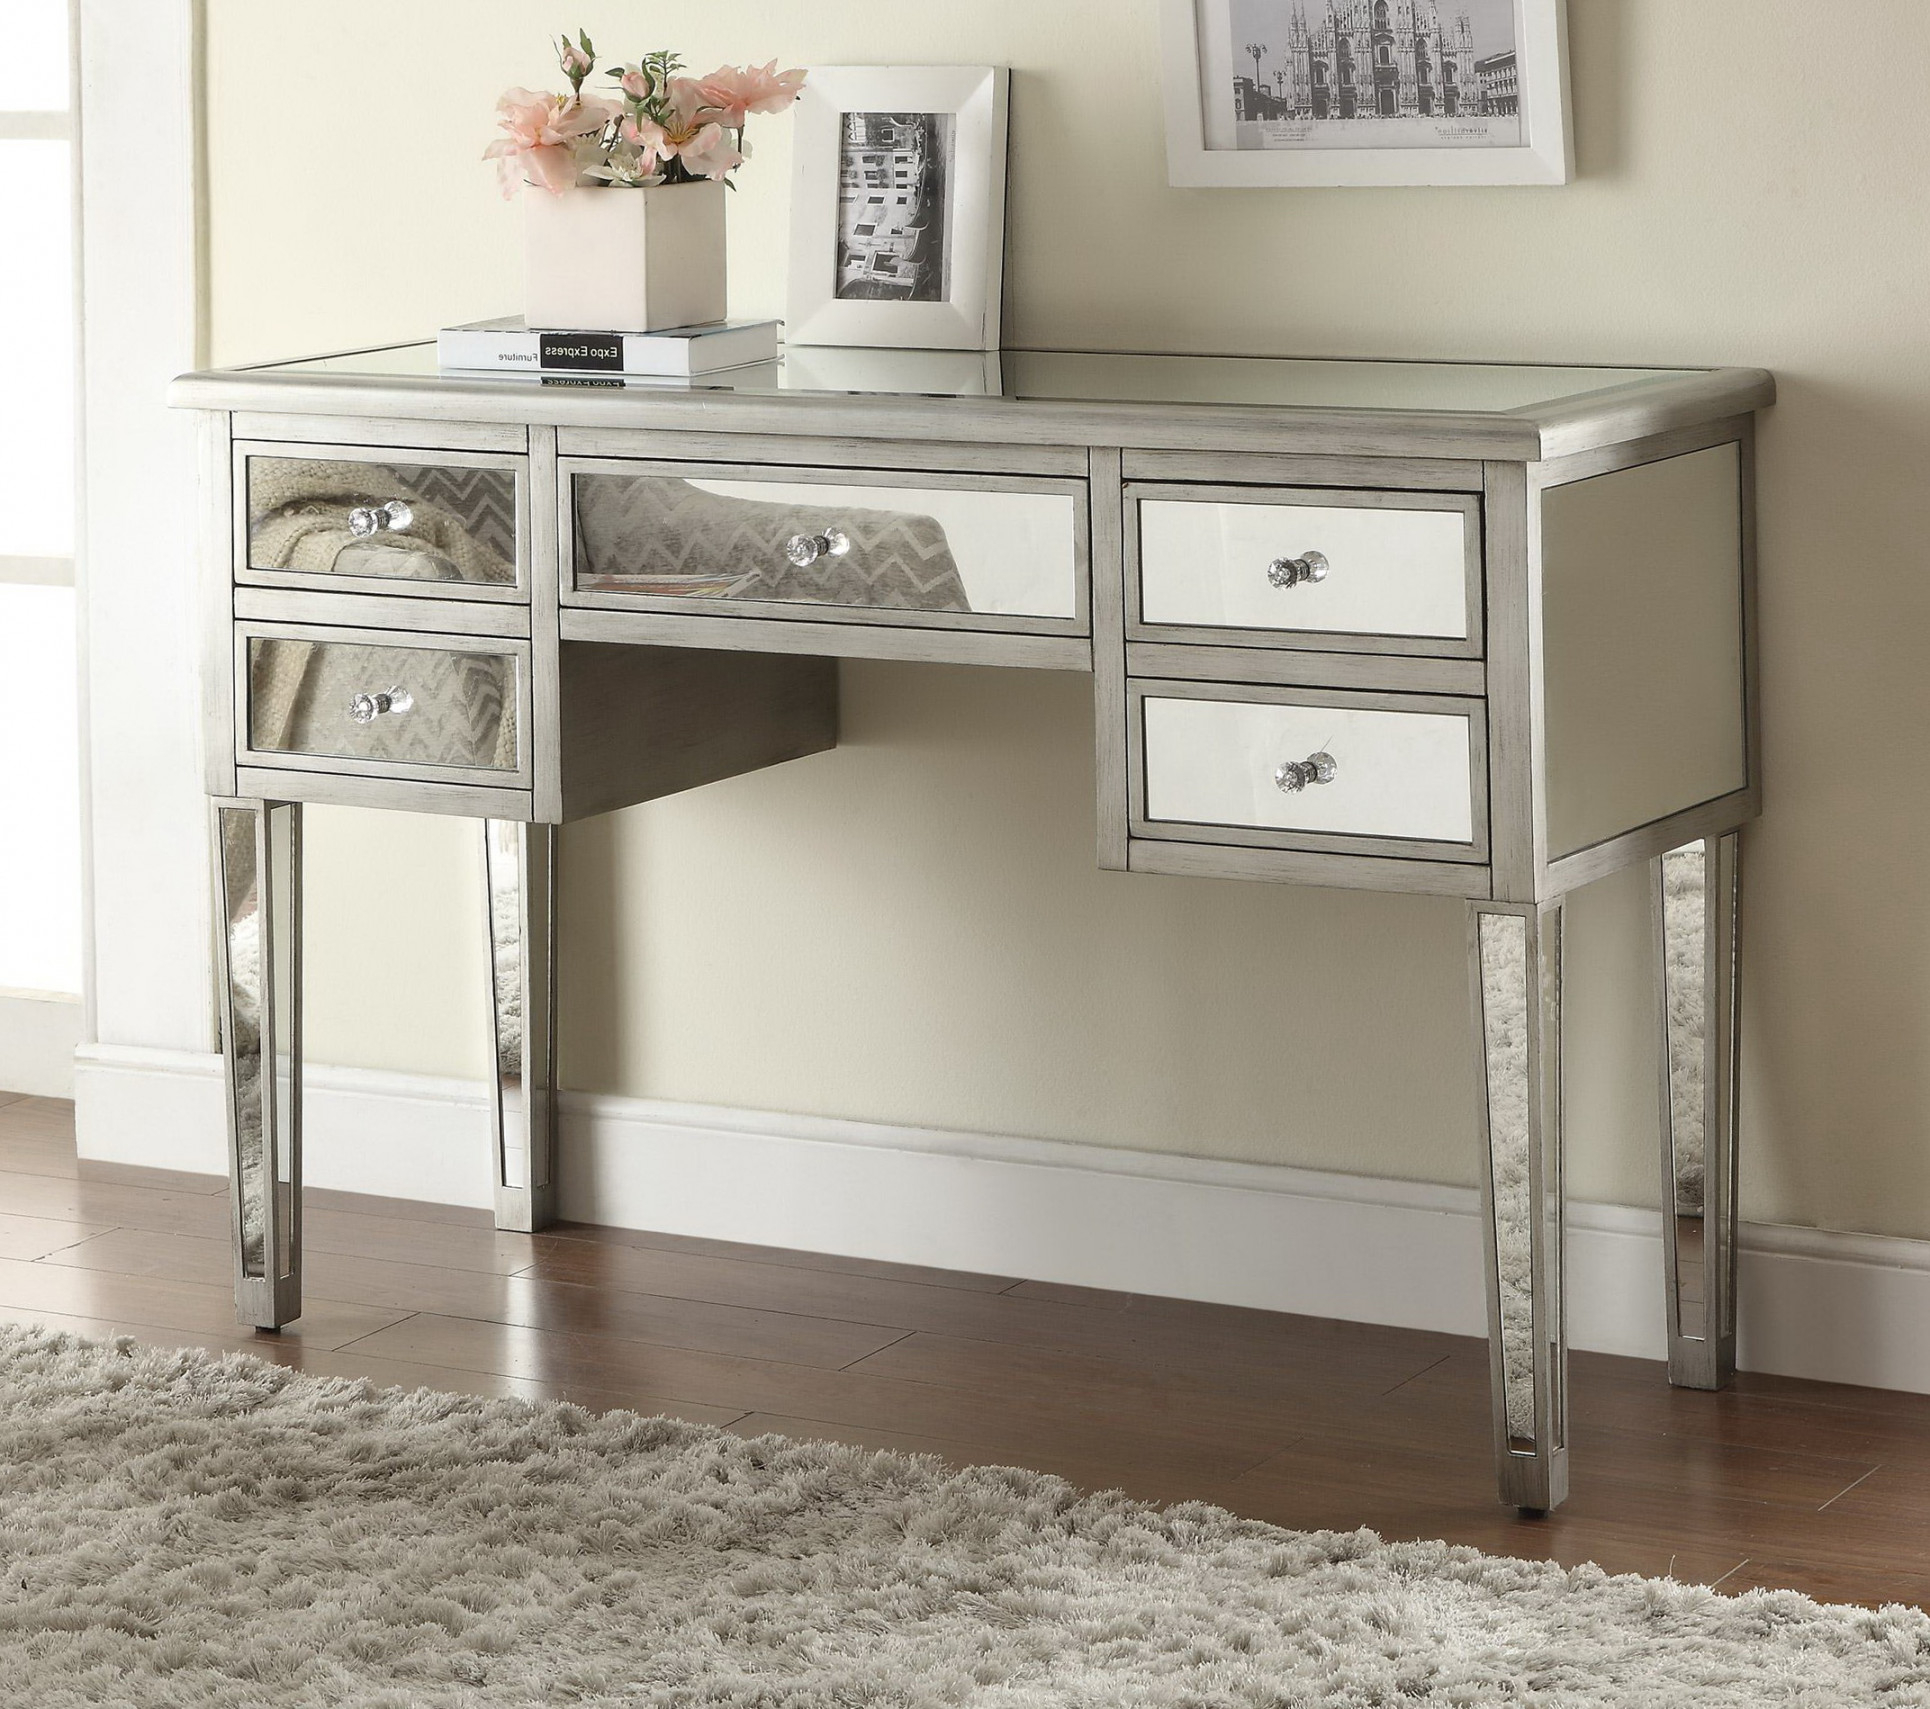 furniture mesmerizing living room and bedroom with mirrored end bedside drawers table side white tables glass accent drawer gourd lamp interior barn door ideas outdoor cherry